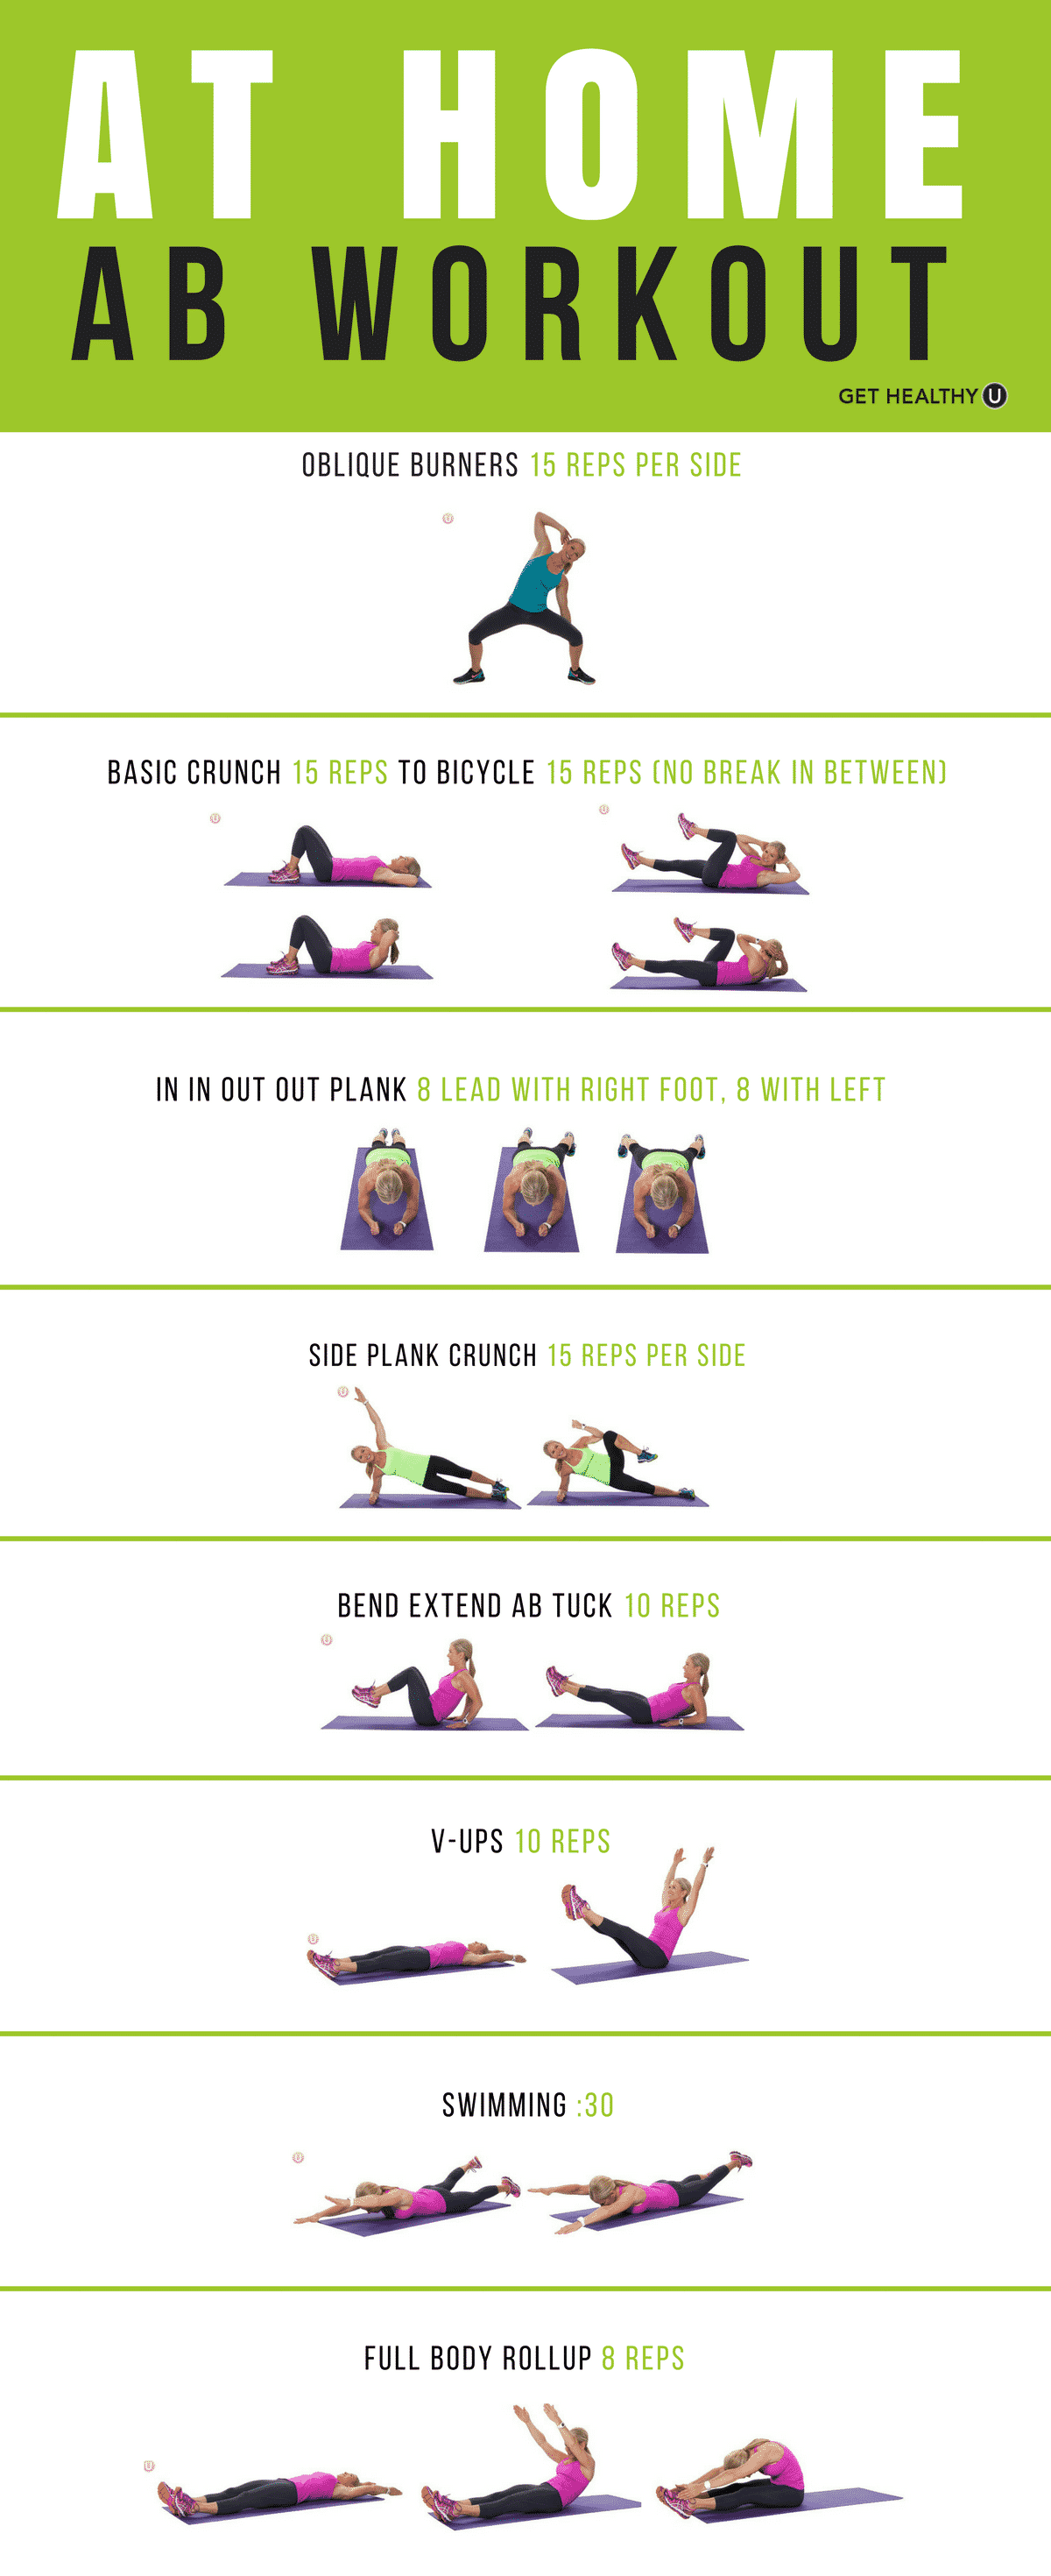 Workout graphic of Chris Freytag performing various abdominal moves